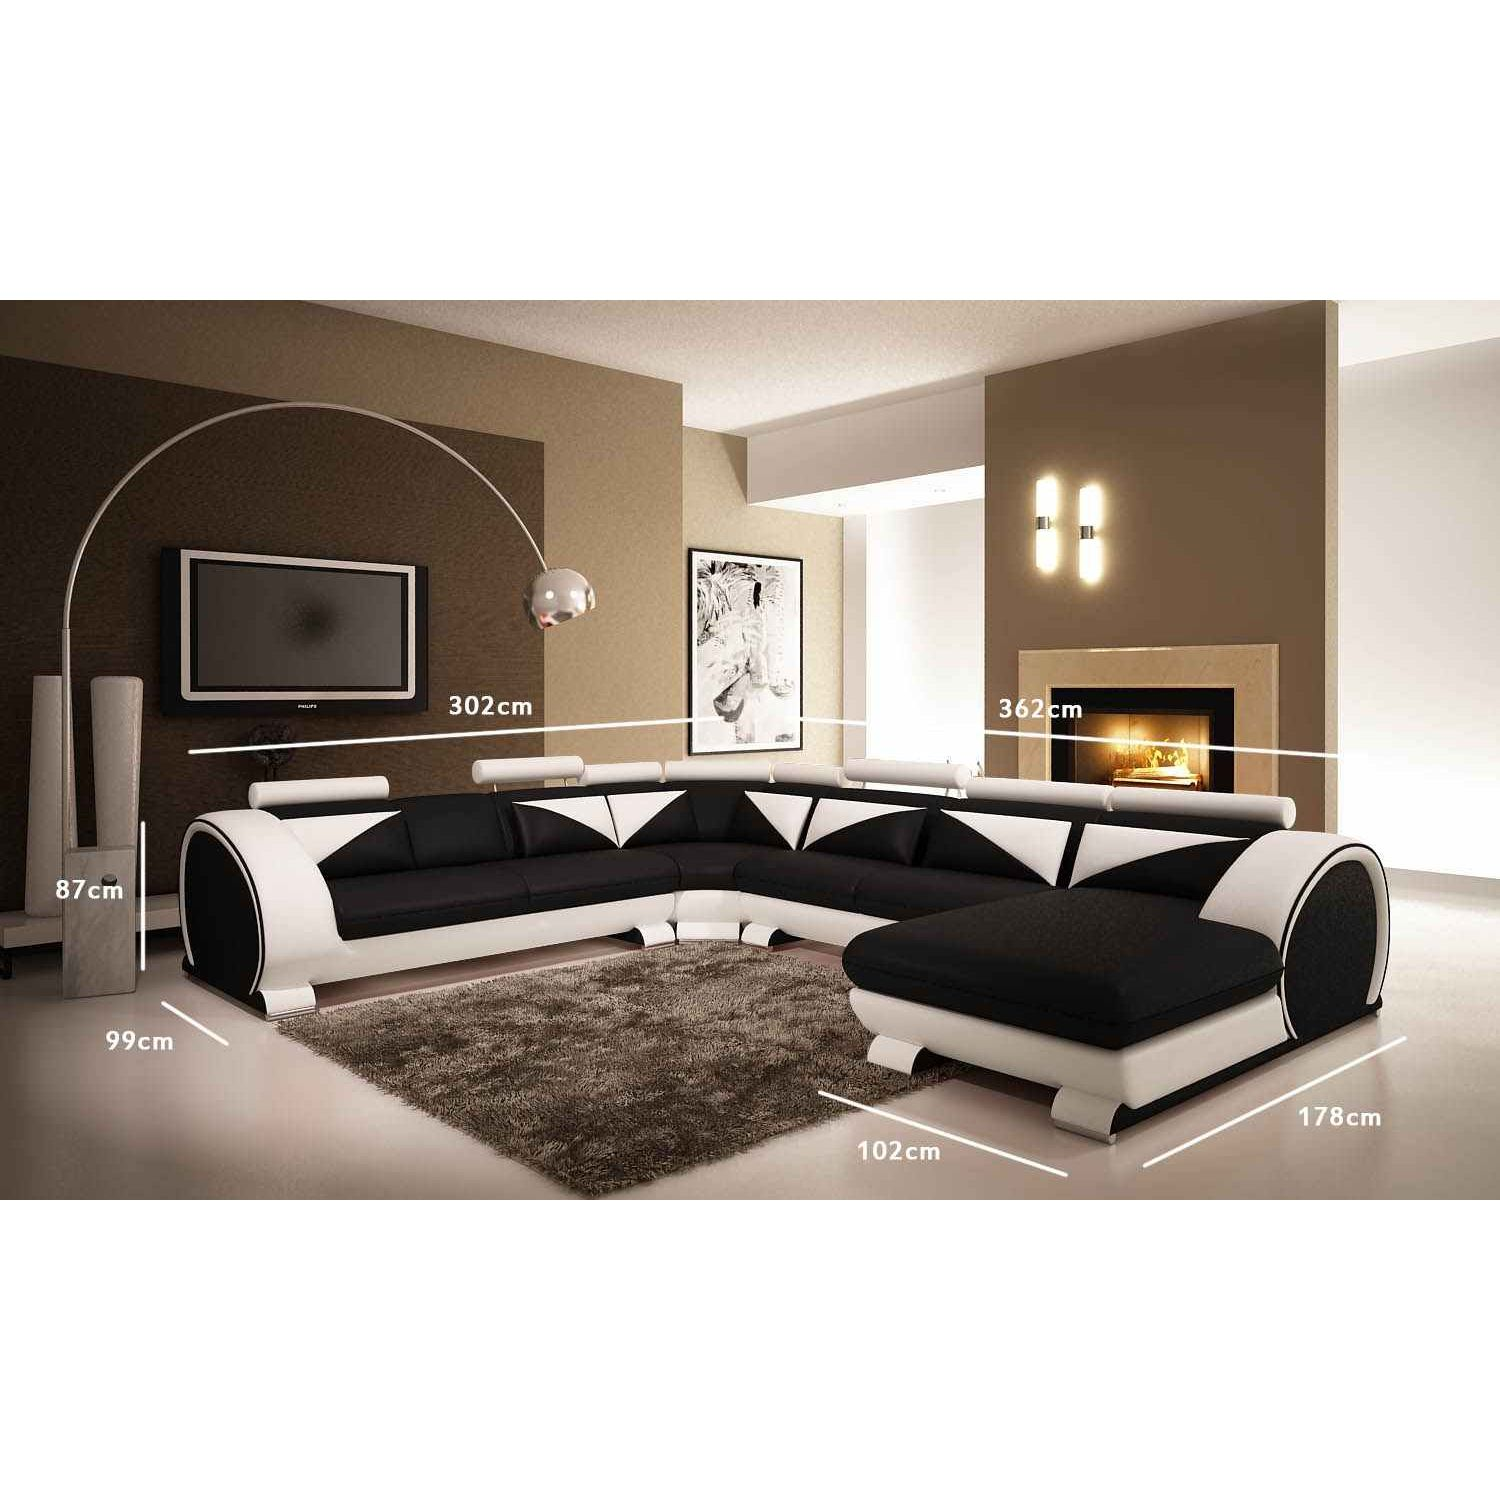 deco in paris canape d angle panoramique cuir noir et blanc miami angle pano miami noir blanc. Black Bedroom Furniture Sets. Home Design Ideas